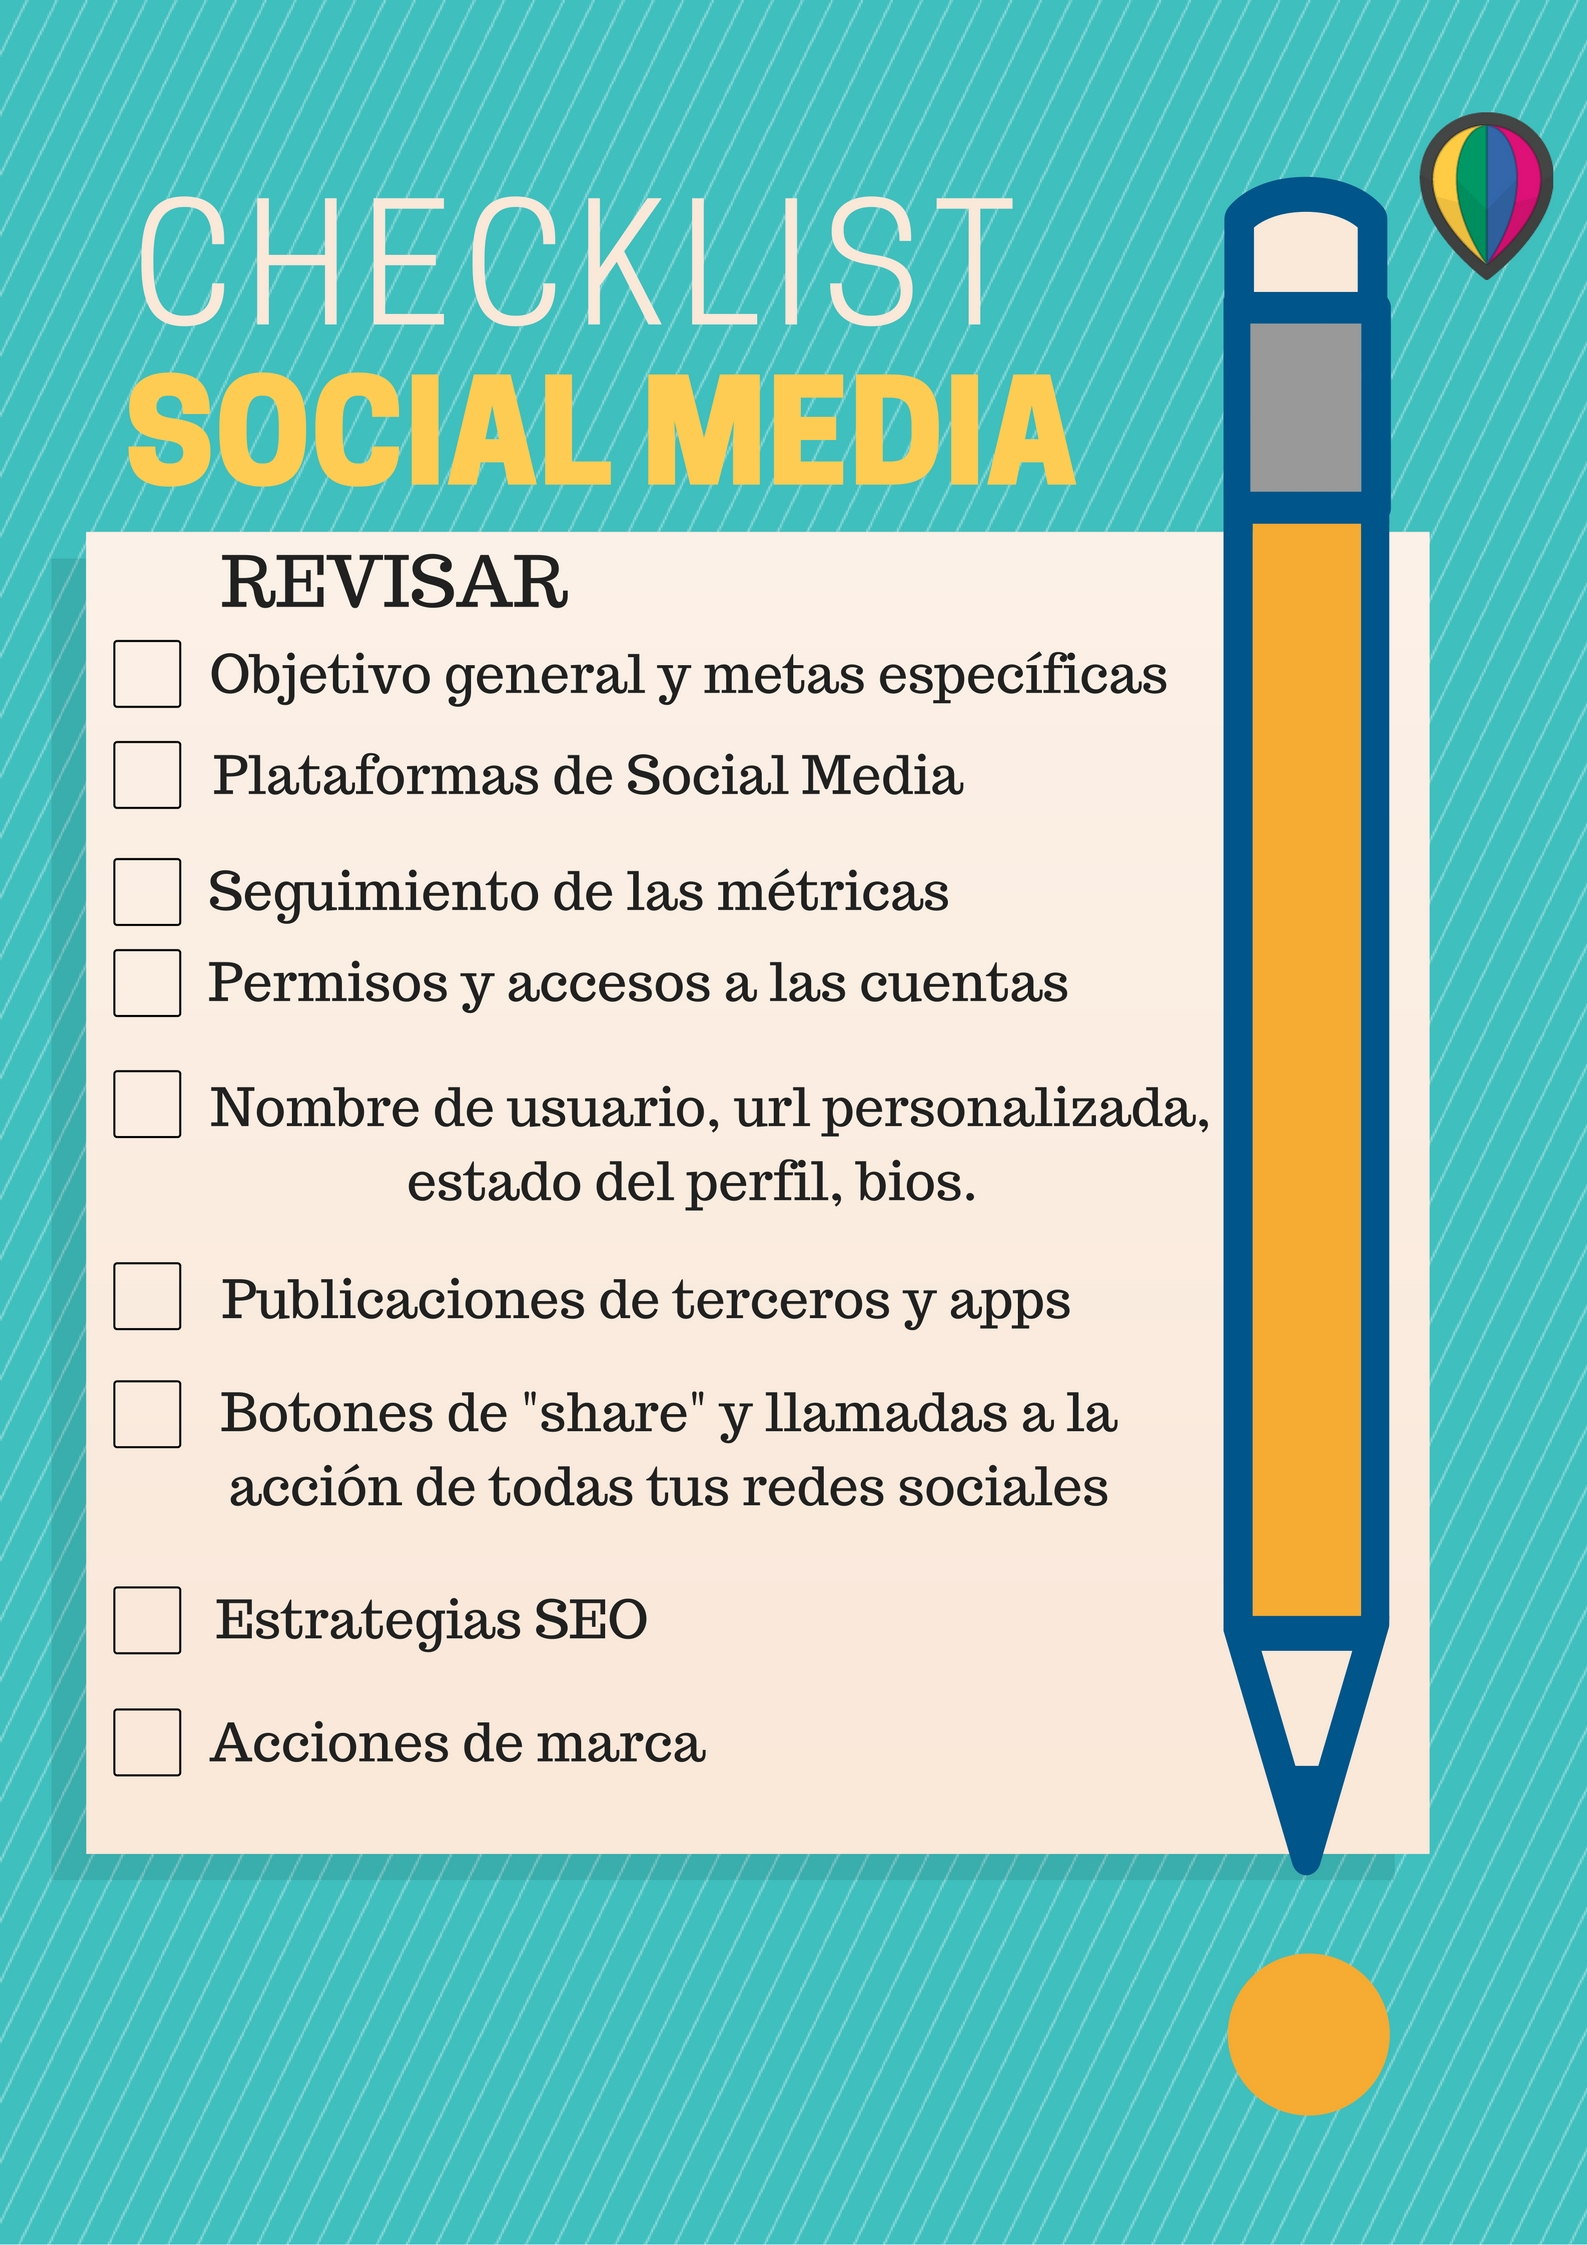 Checklist Plan de Social Media